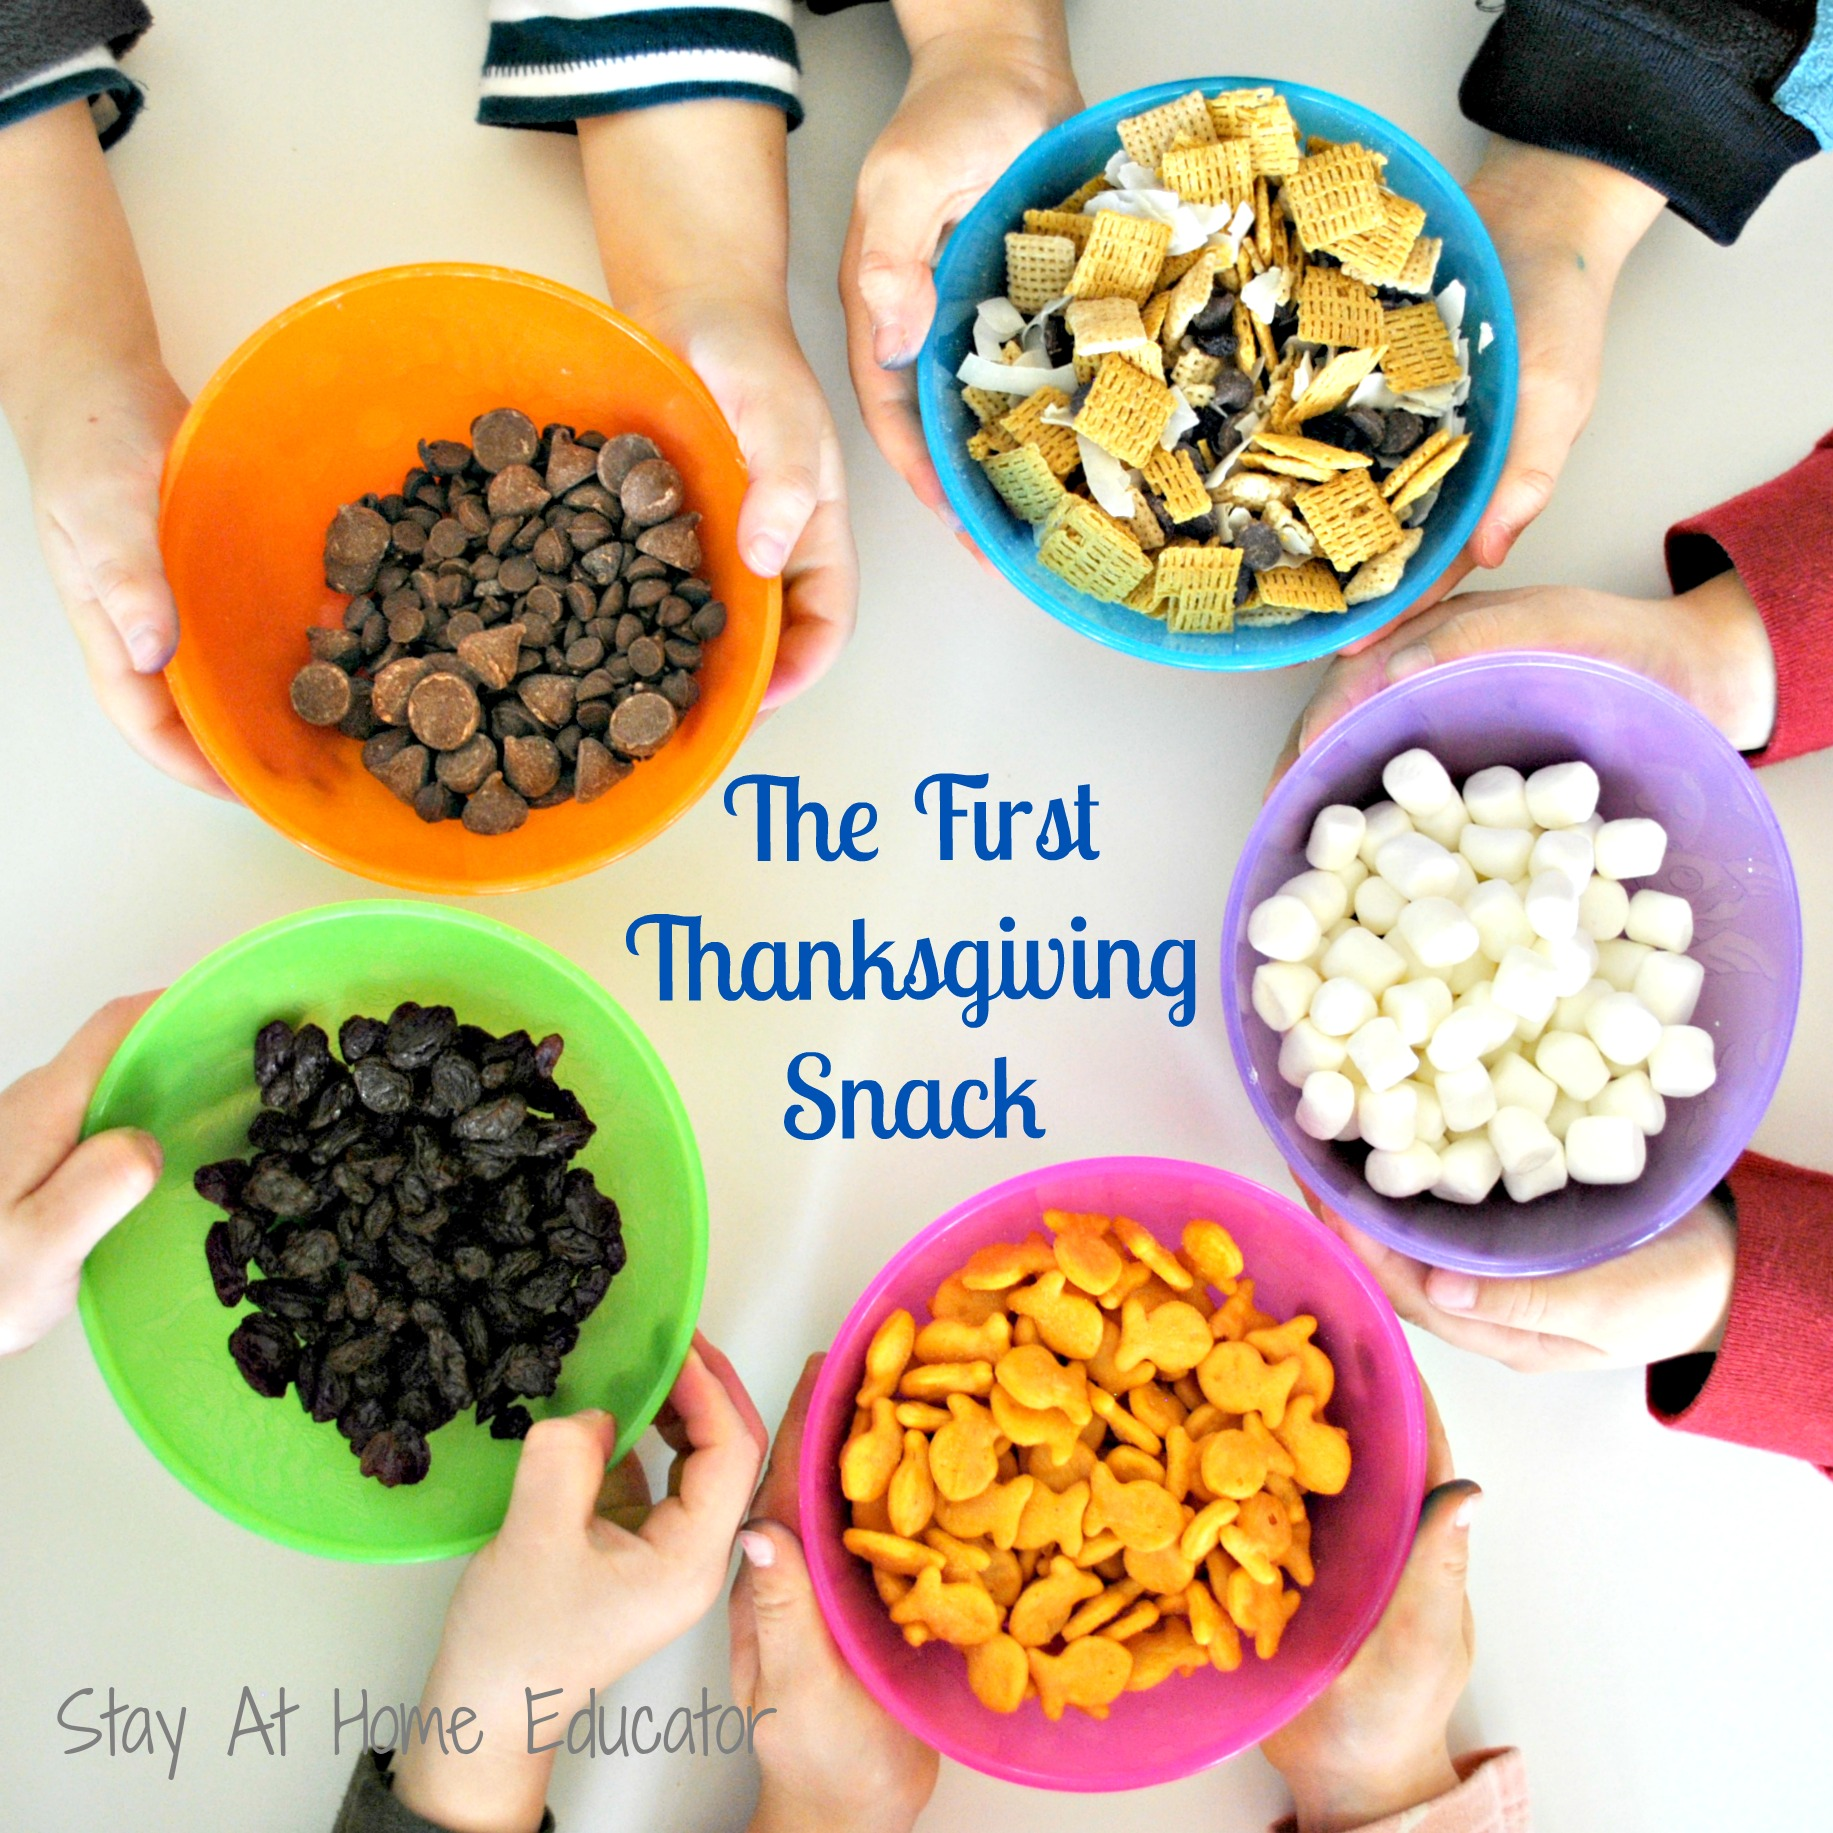 The First Thanksgiving Snack